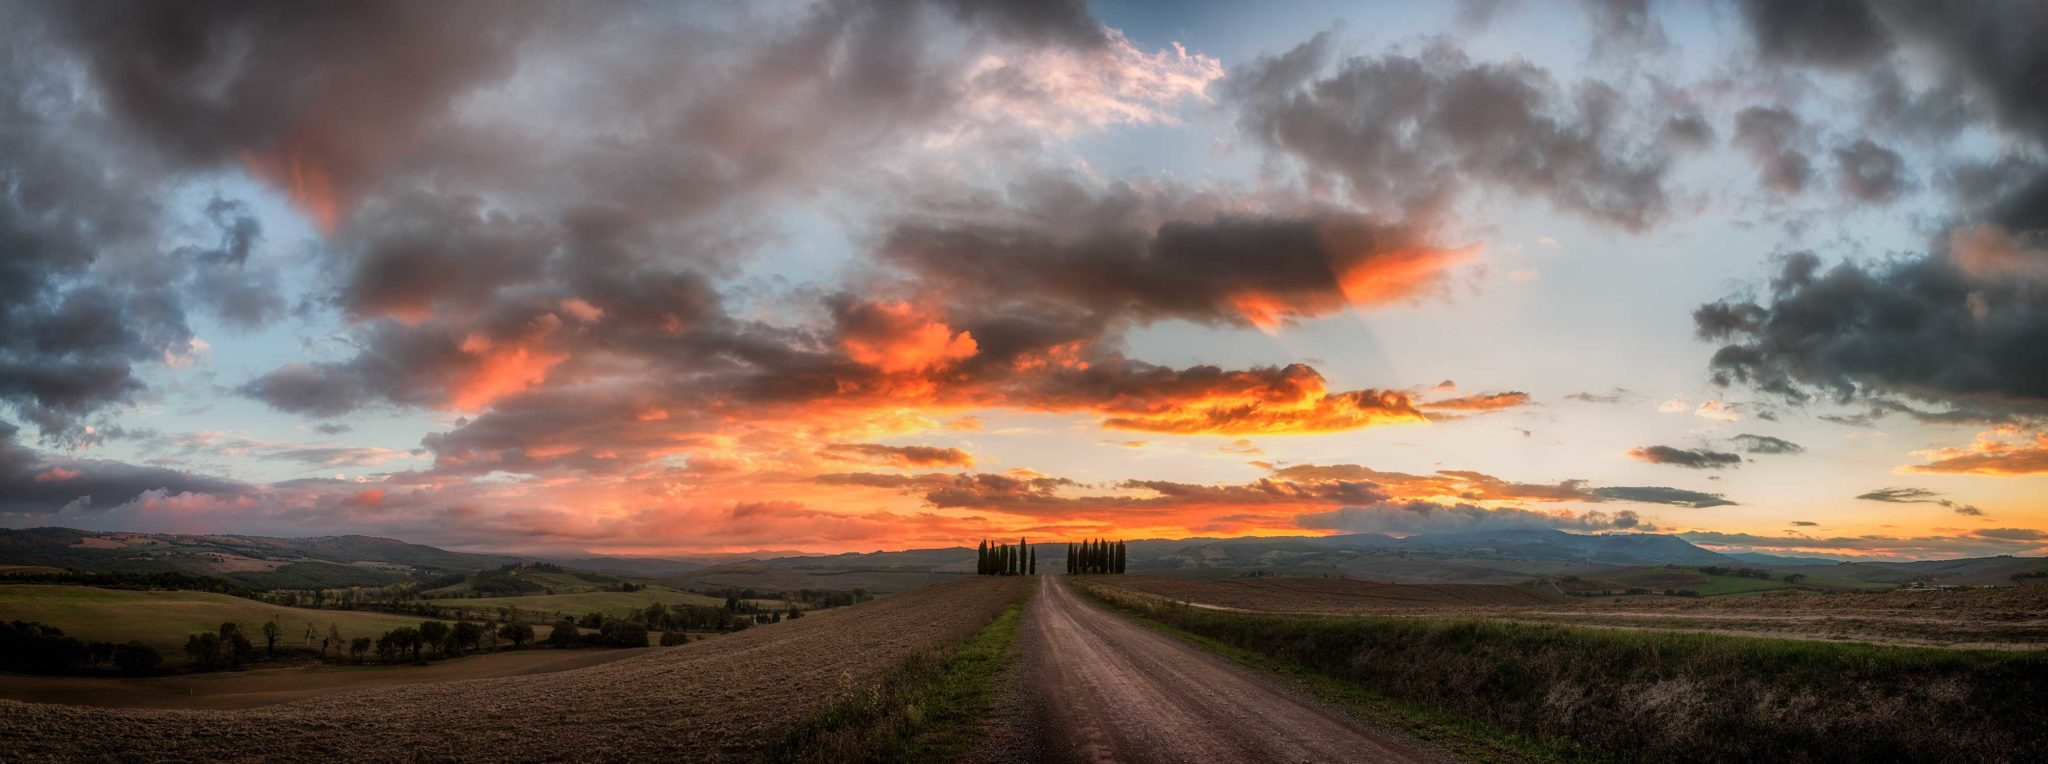 Portfolio Toskana, Val d'Orcia, Herbst, Workshop, Workshops, Fotografie, Panorama, Photography, Ernst Merkhofer, Fotograf, Landschaft,